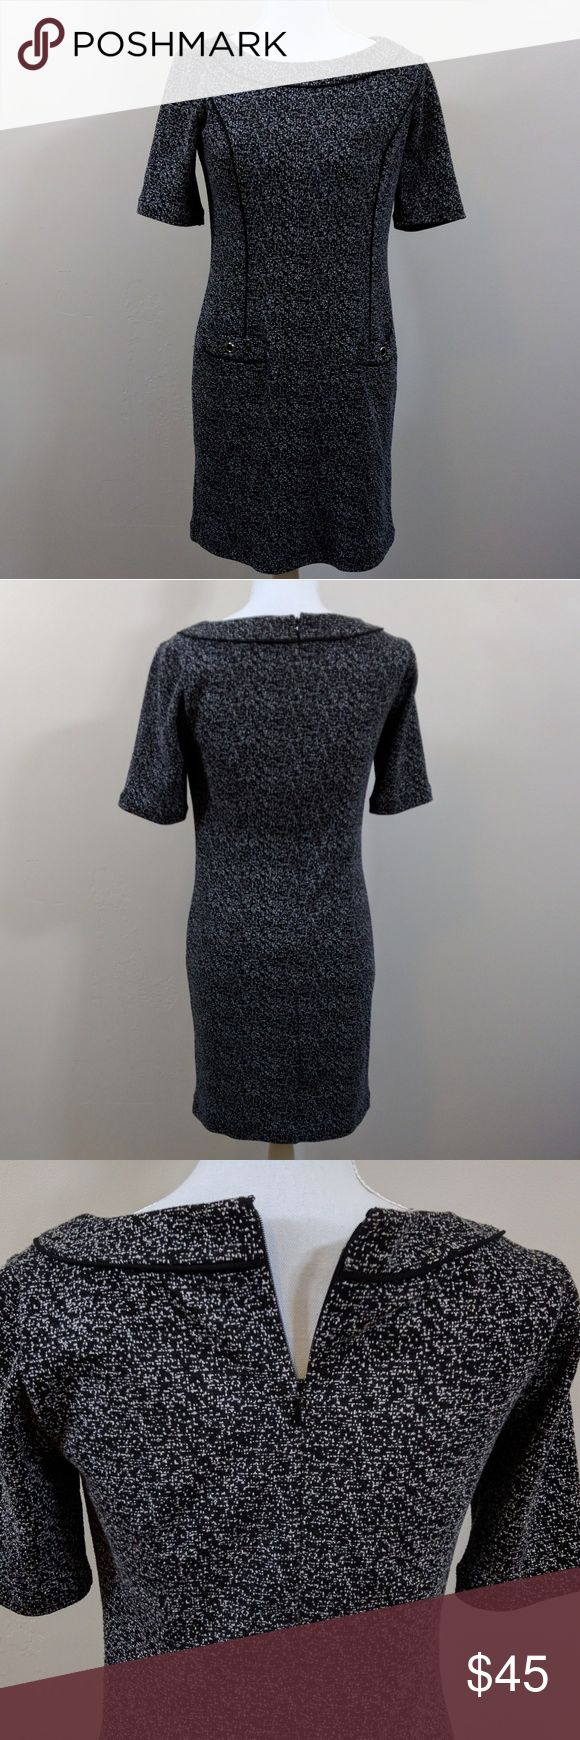 WHBM grey and black dress size 4 Super cute! This is great from work to date night. Lined with soft 100% polyester. Shell is polyester cotton mix. Two functional pockets on front of dress. Zip closure with clasp on back. Elbow sleeves and high neckline make this a modest dress!  Excellent condition!! White House Black Market Dresses Midi